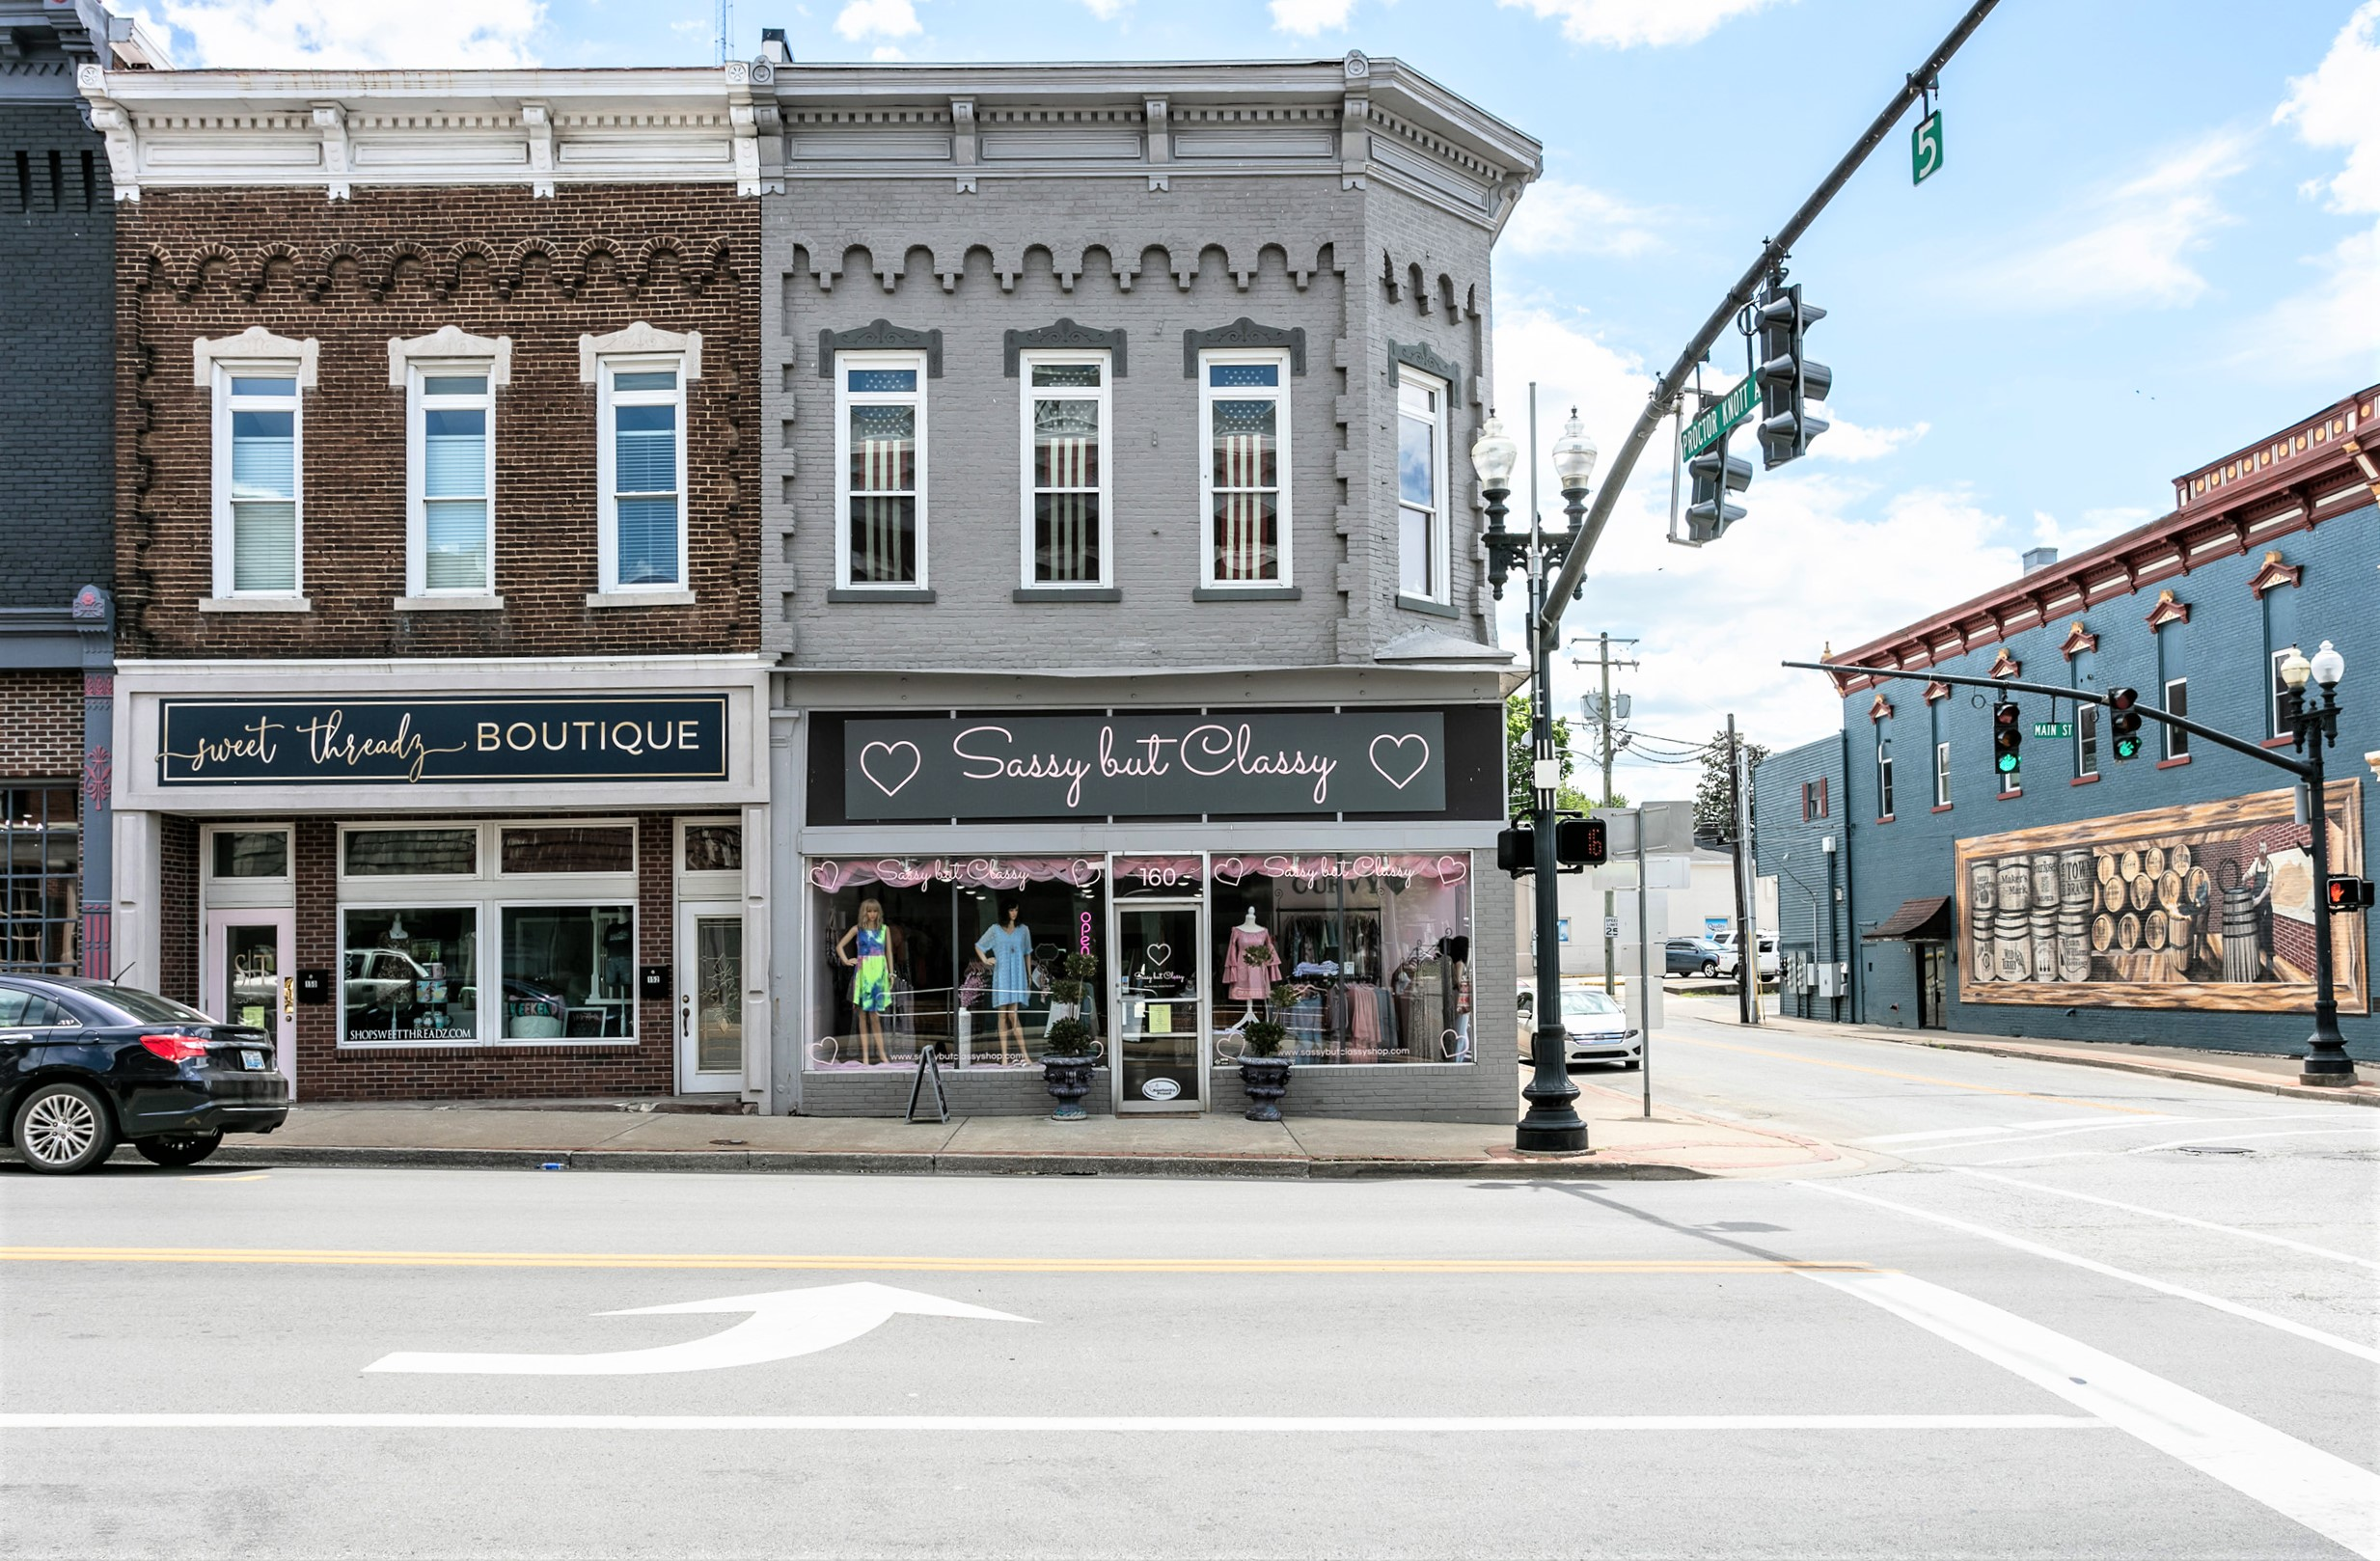 160 W. Main Street – Lebanon Commercial Building Central Business District